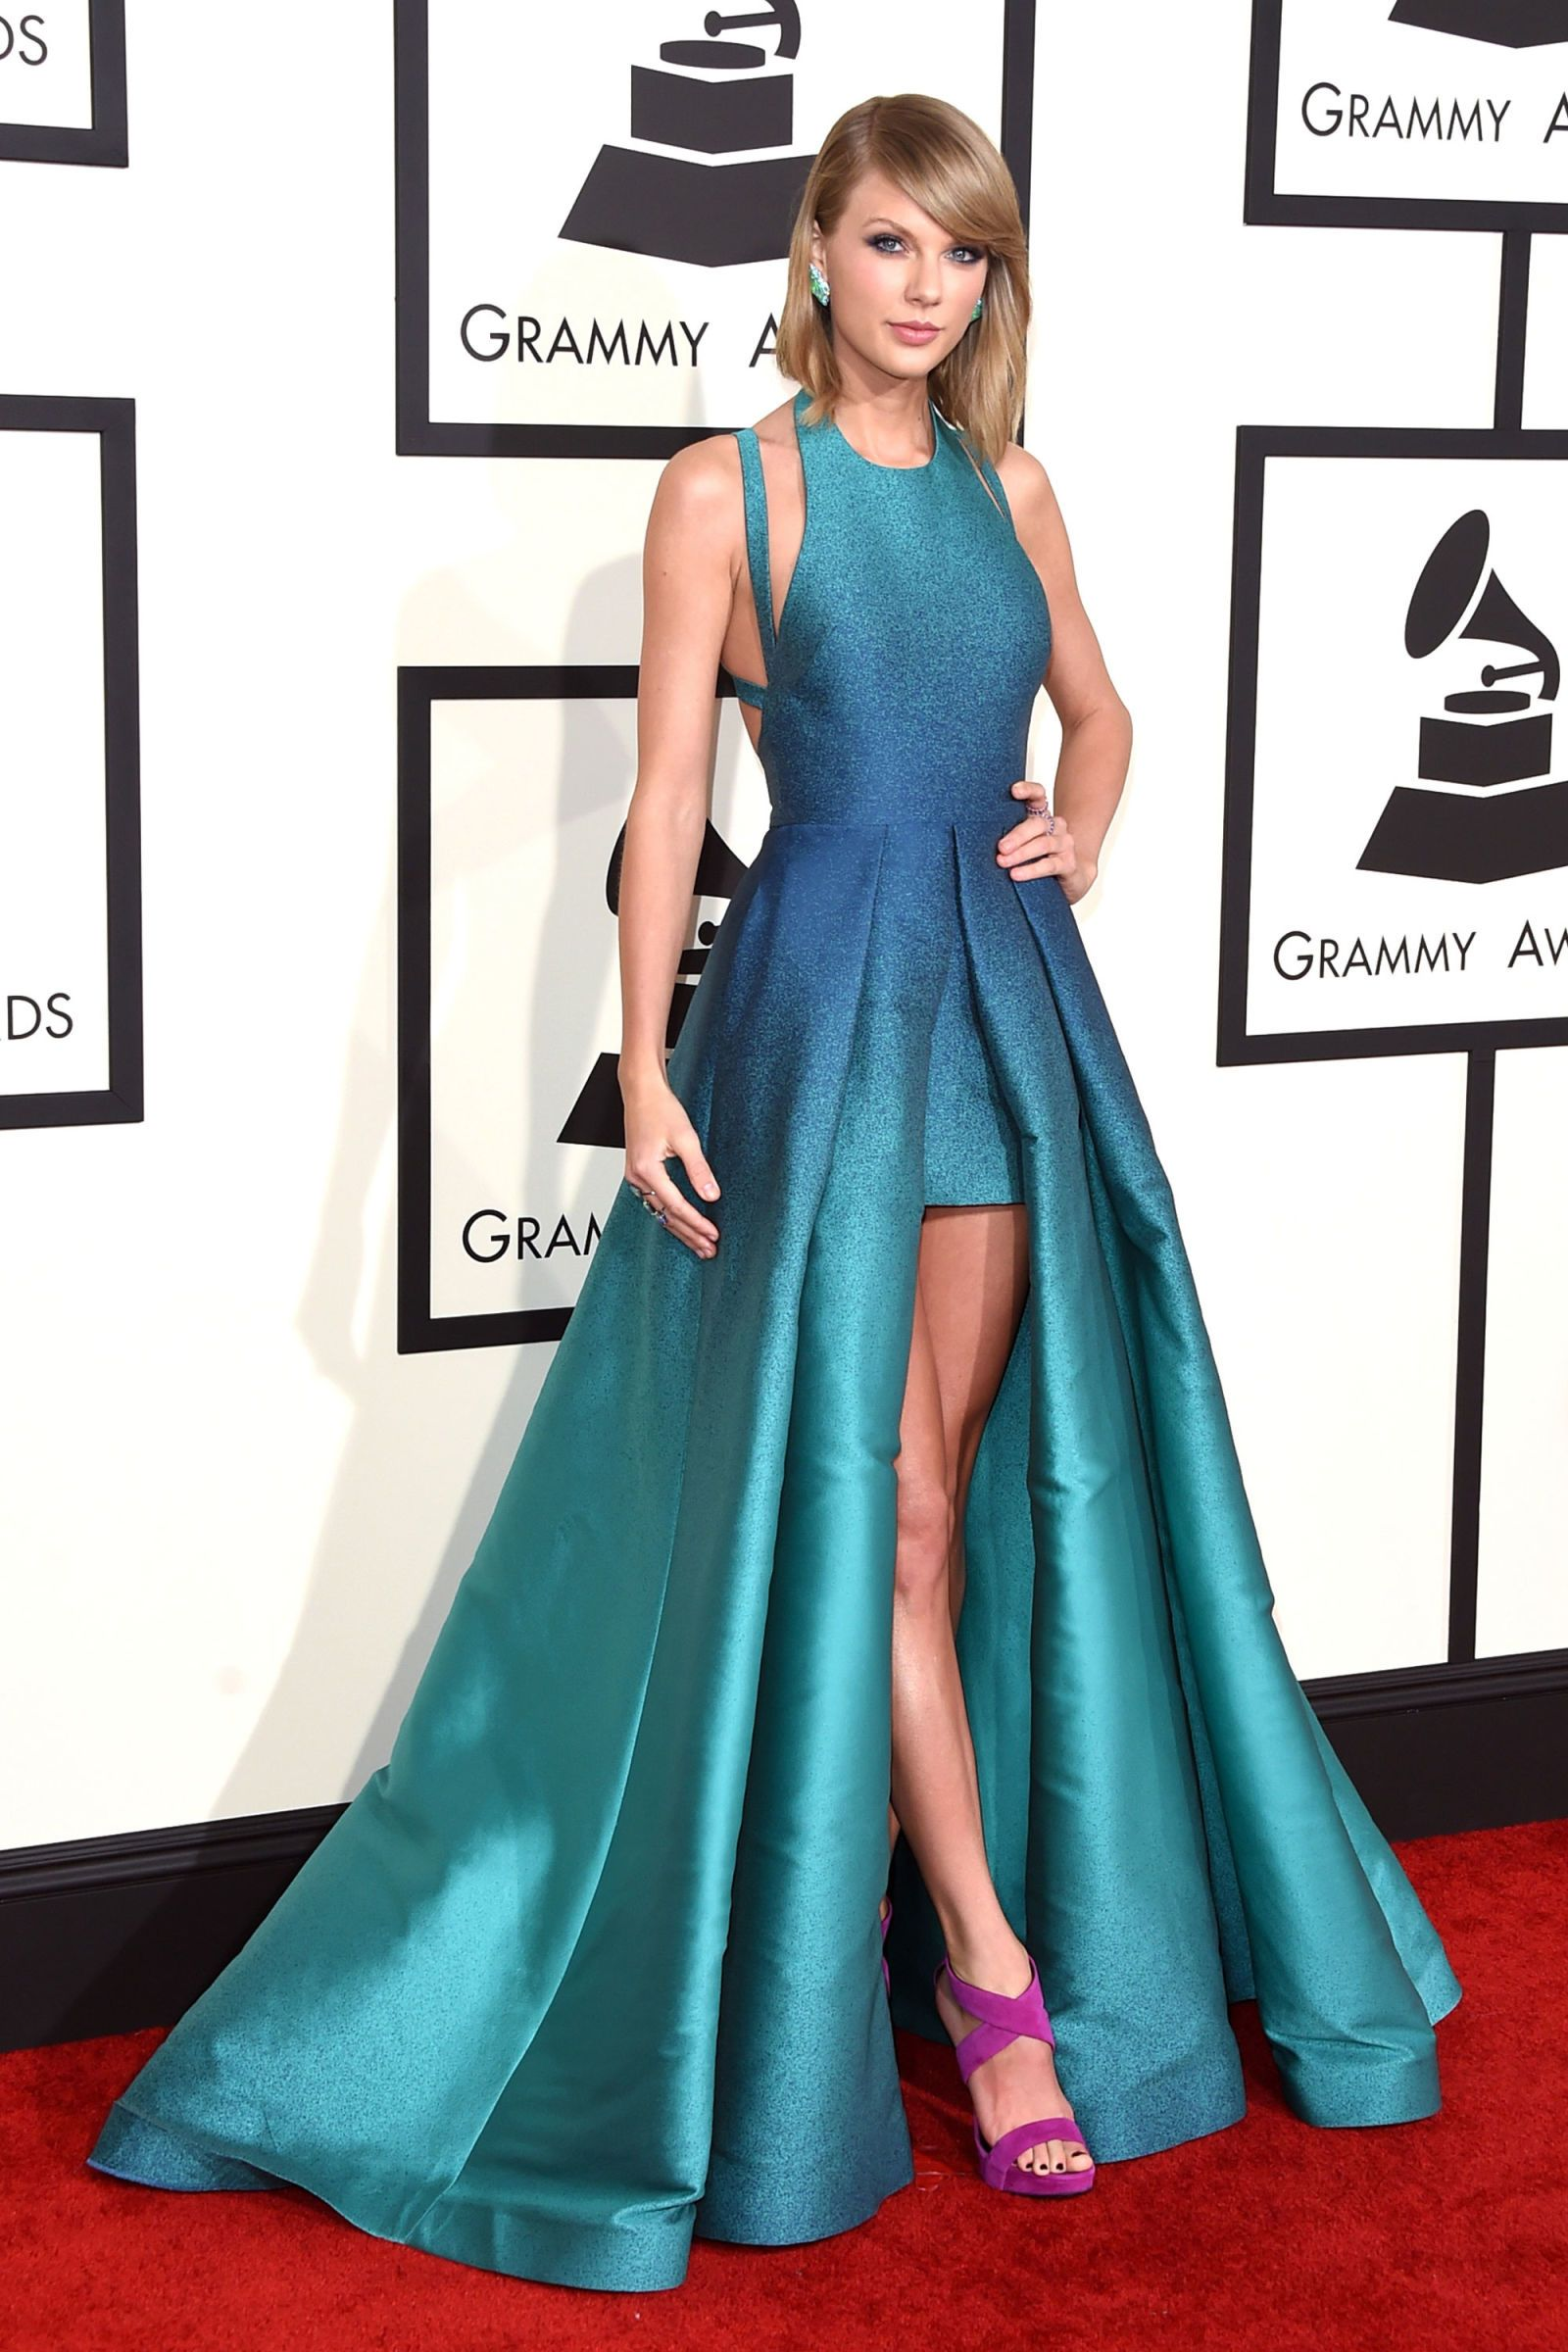 The Fug Girls\' Best and Worst of the Grammys Red Carpet | Taylor ...